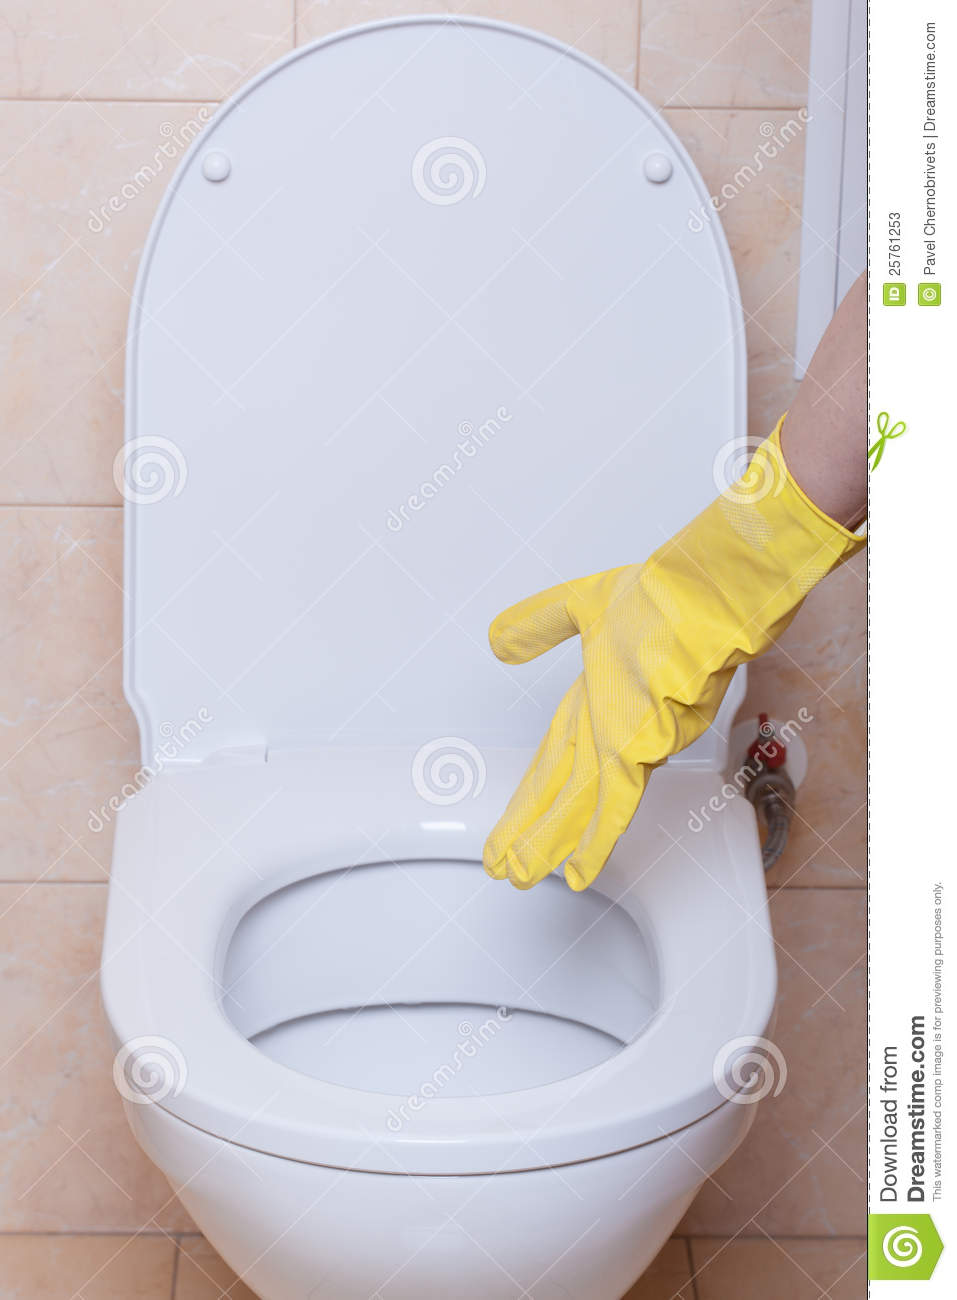 Toilet Hygiene Concept Stock Image Image Of Home